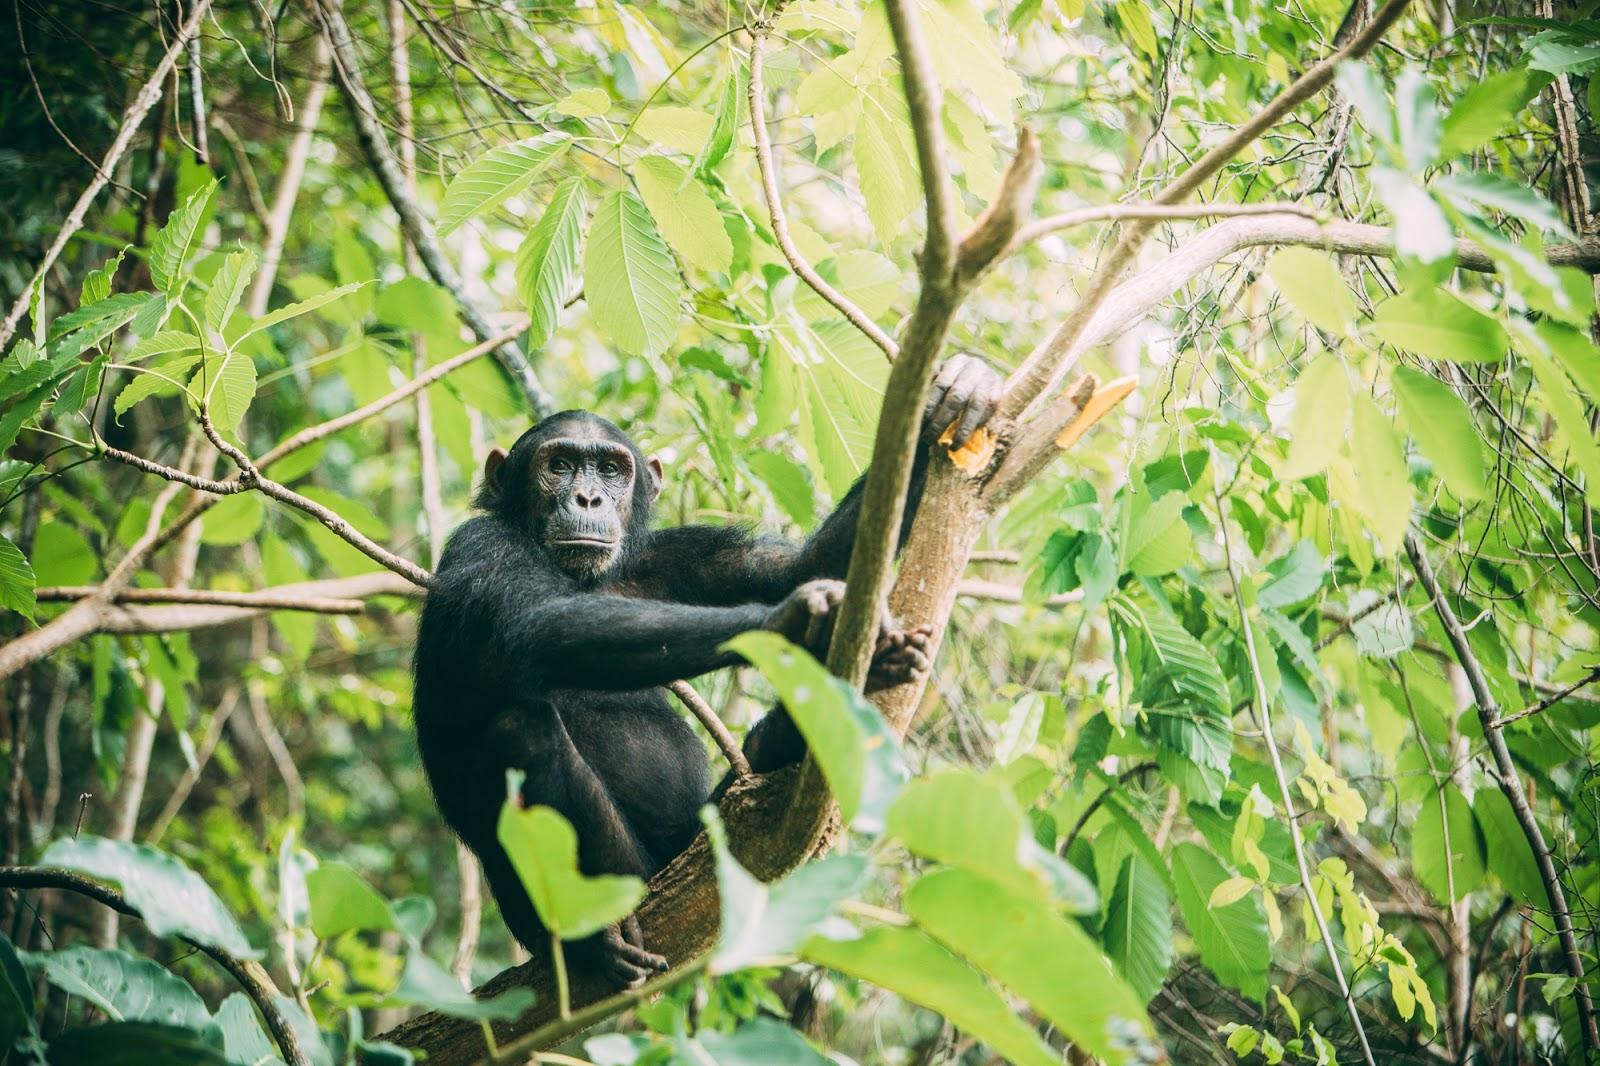 chimp holding onto branches in a green canopy of trees